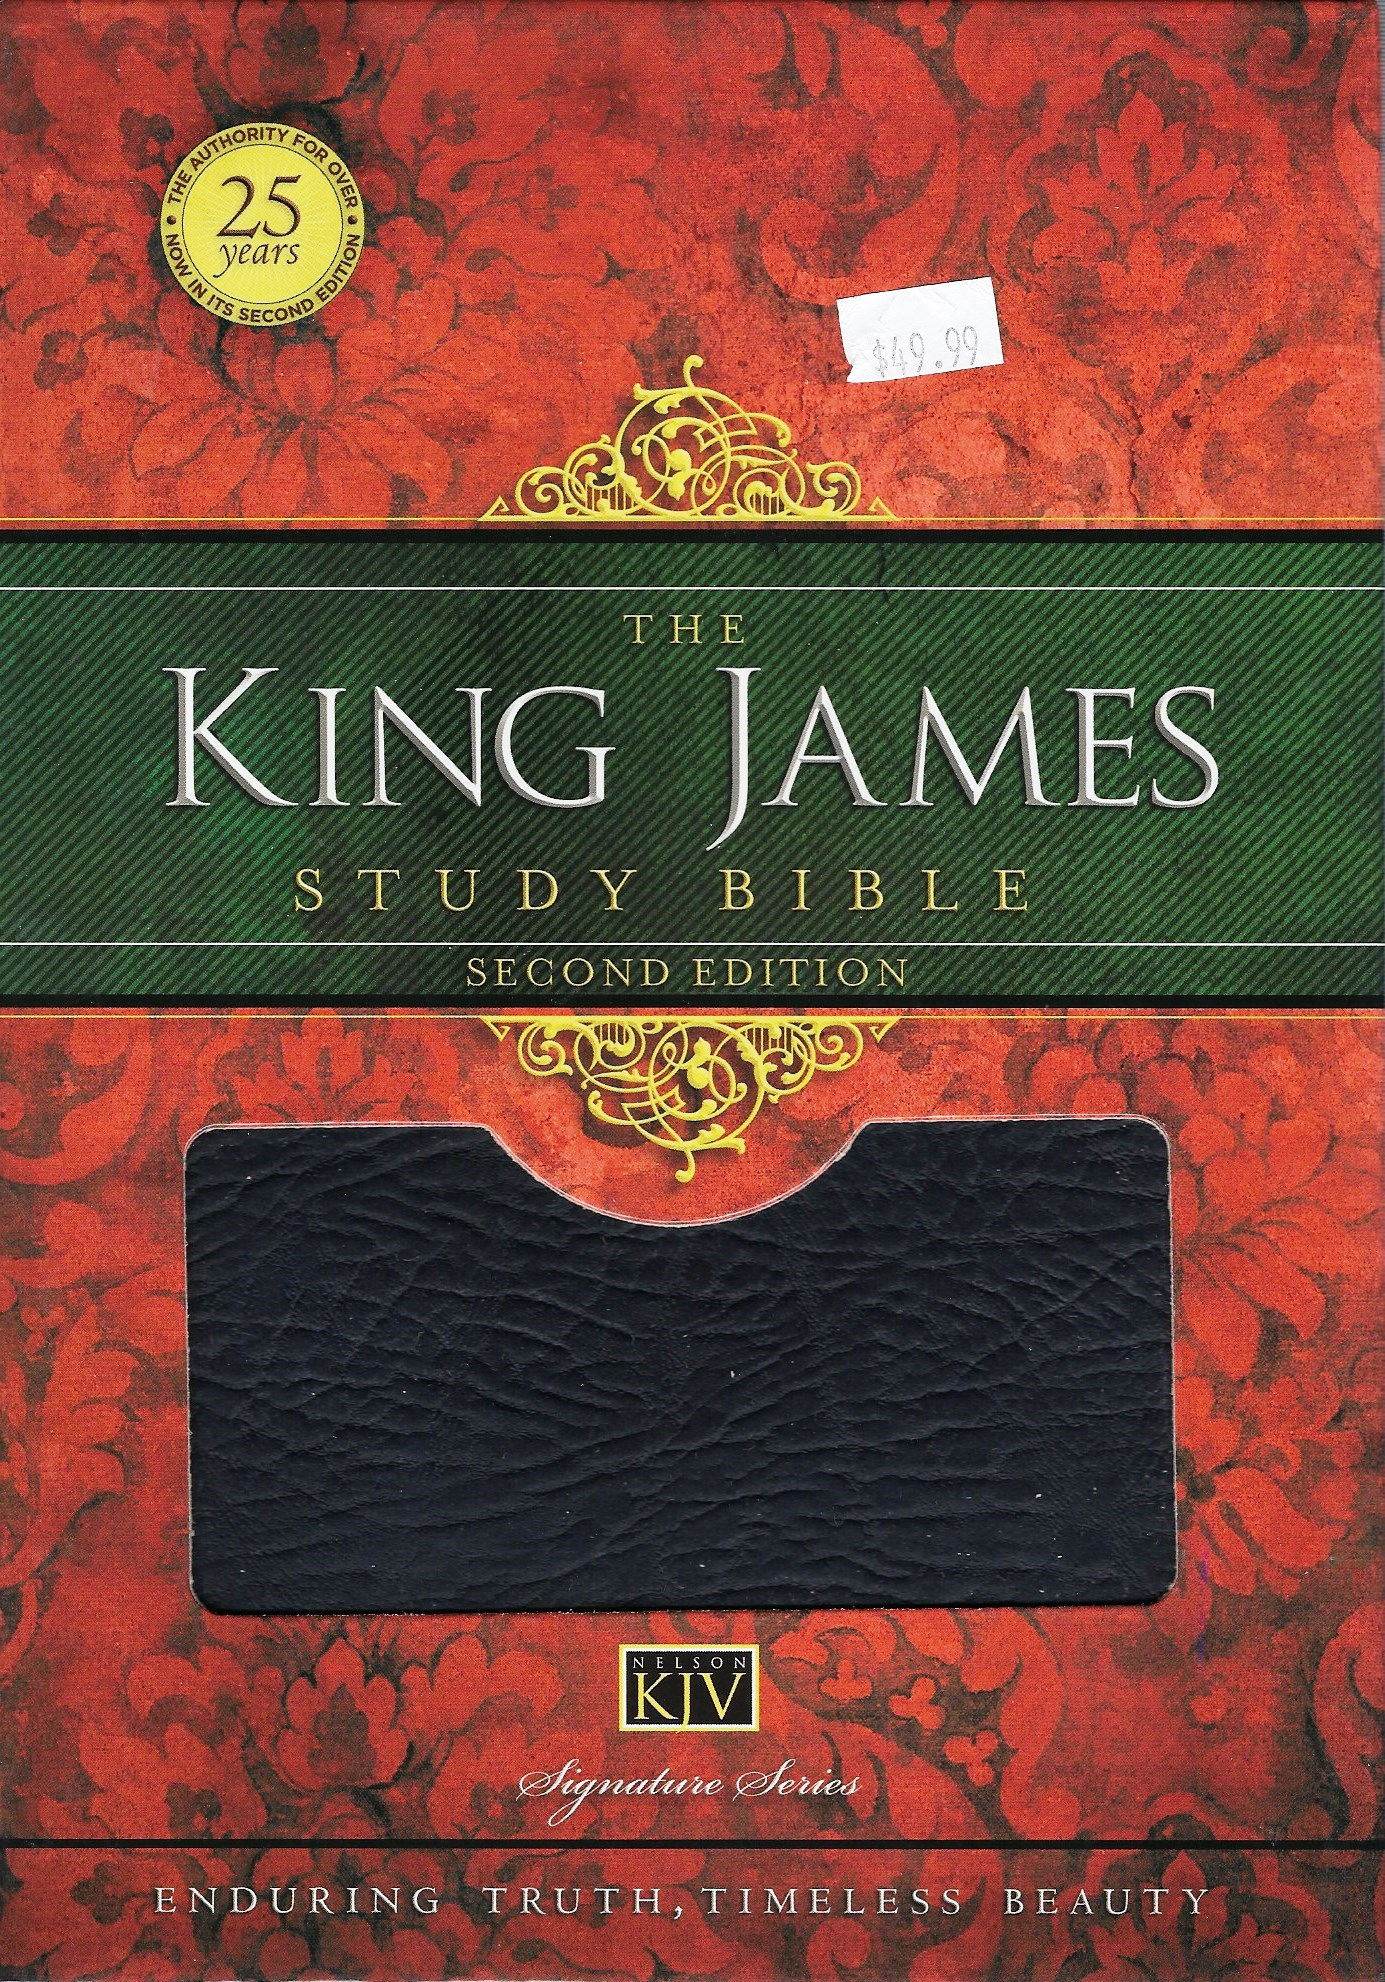 THE KING JAMES STUDY BIBLE Second Edition